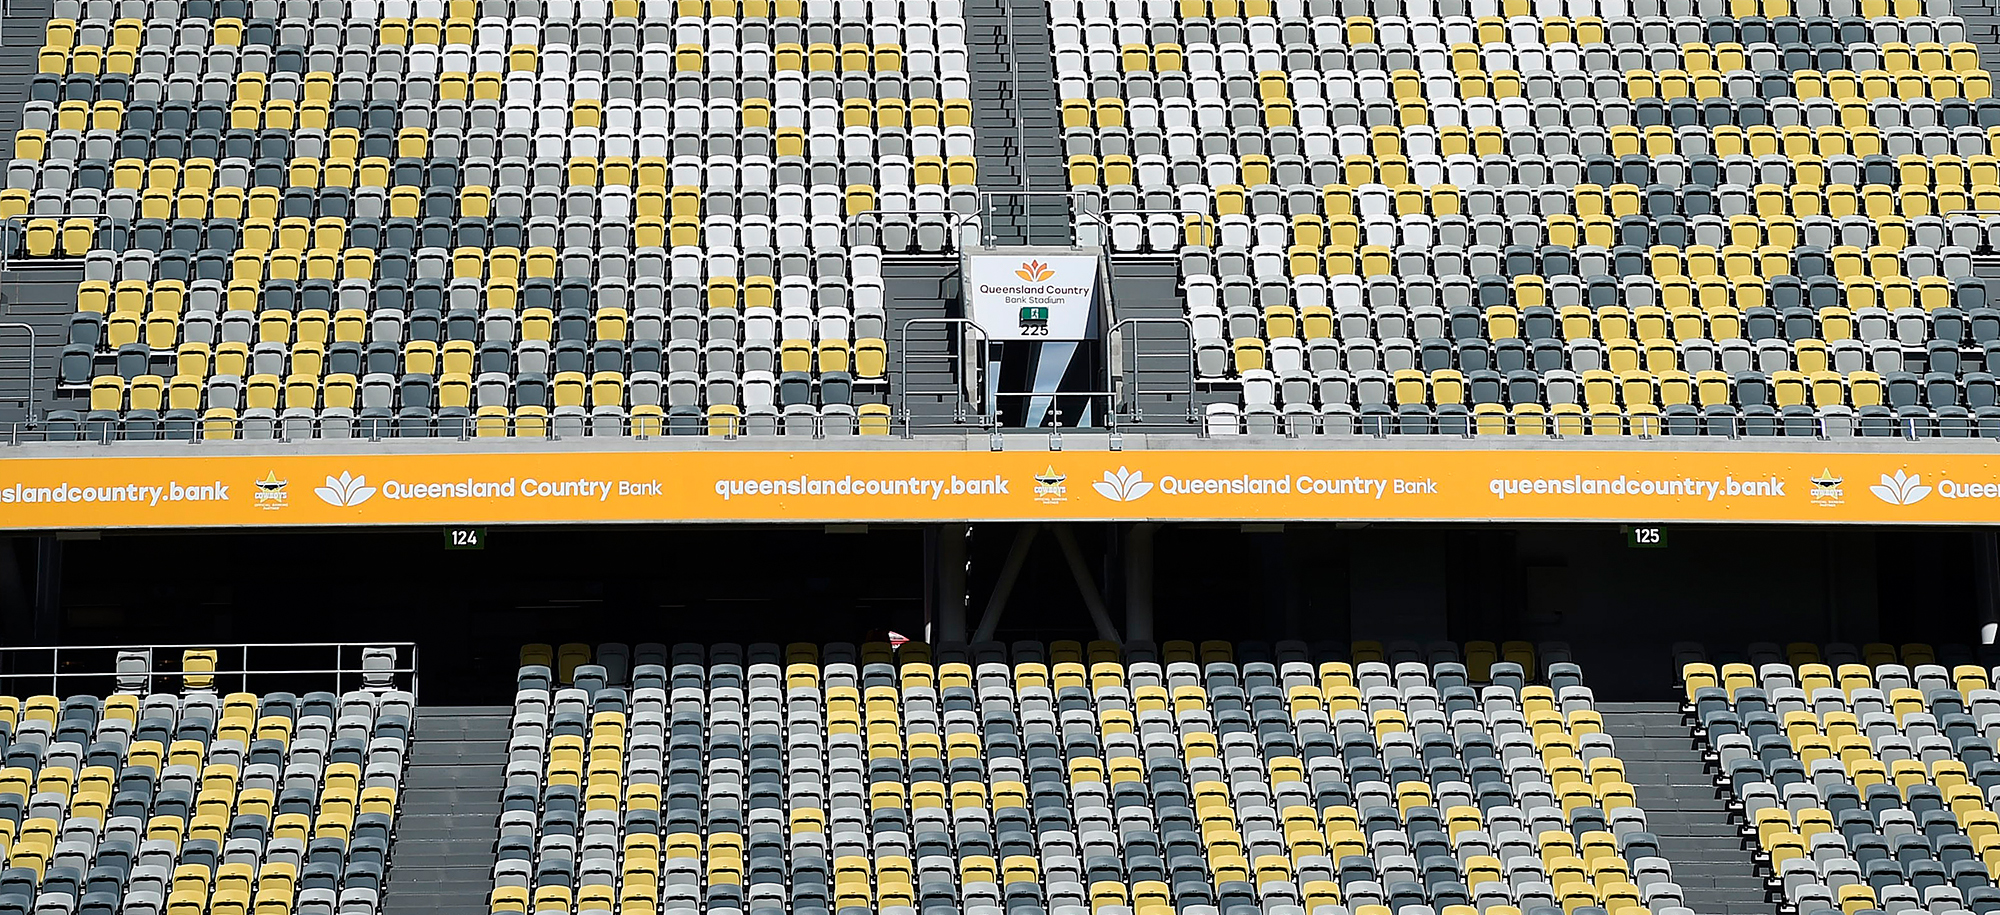 A general view of the stadium seats are seen before the start of the round 1 NRL match between the North Queensland Cowboys and the Brisbane Broncos atQueensland Country BankStadium on March 13 in Townsville, Australia.